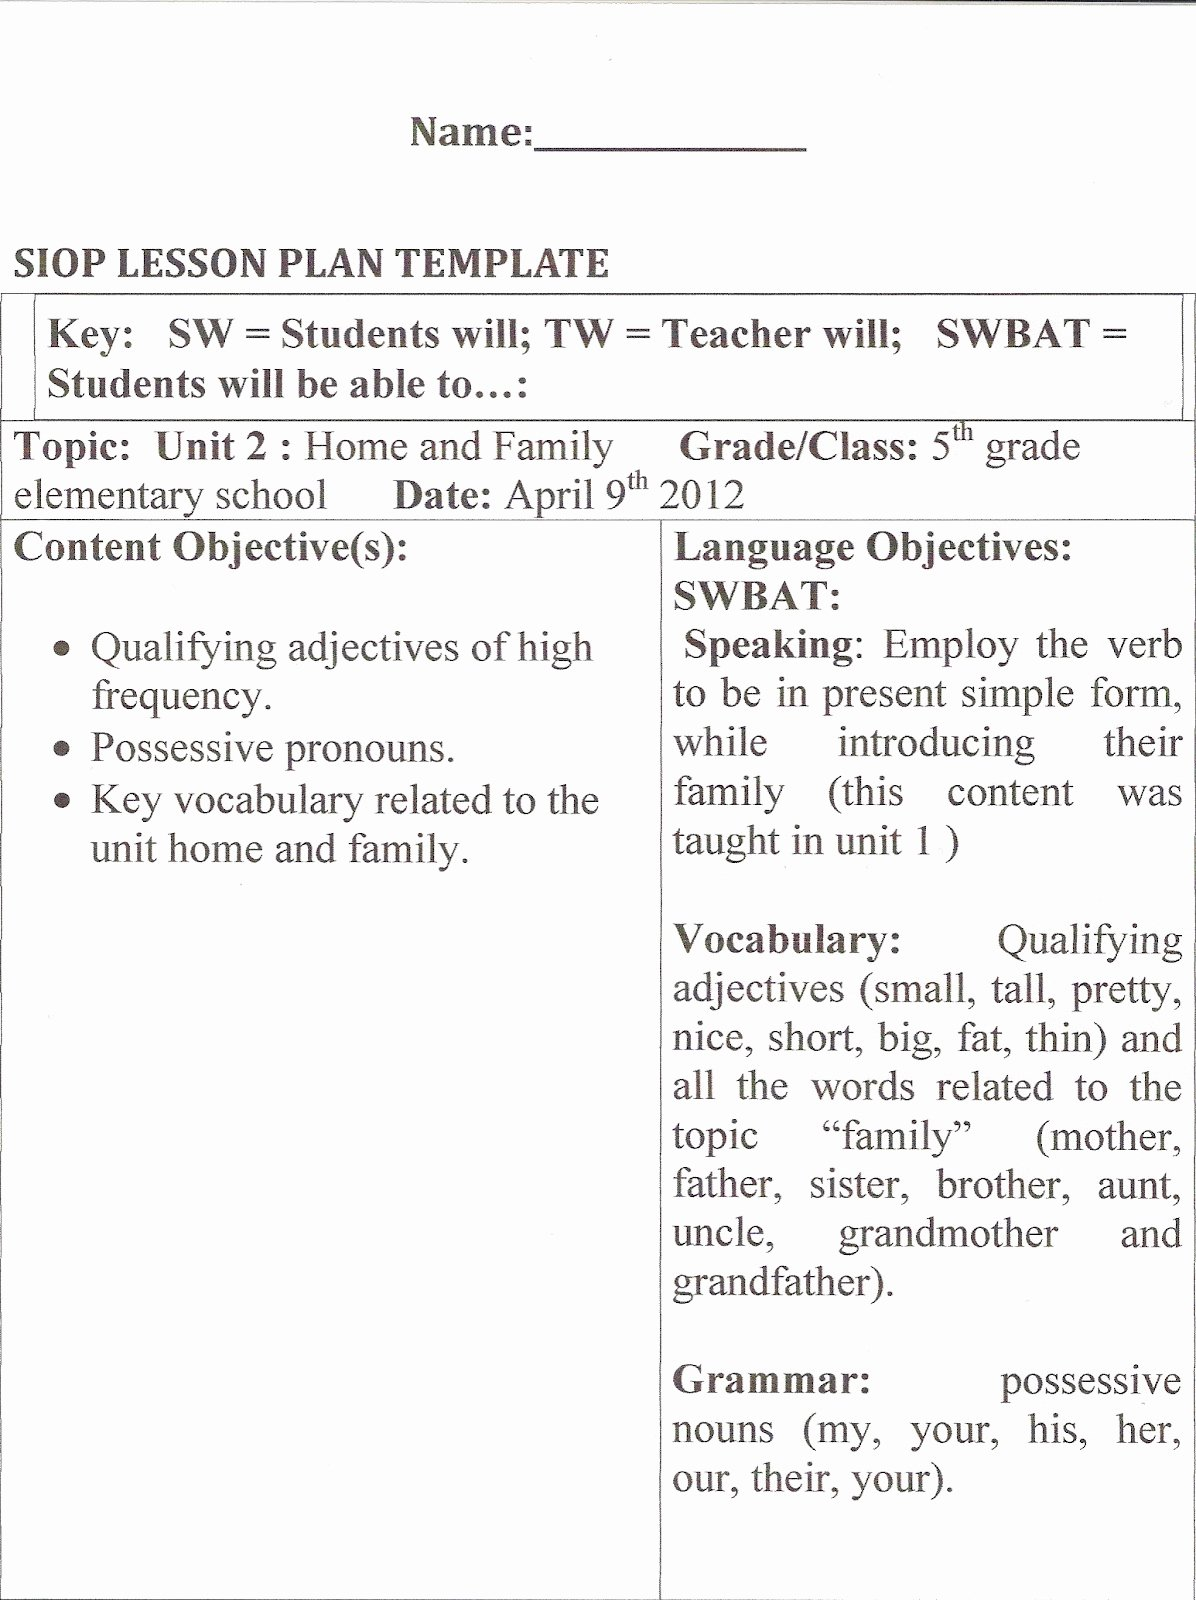 Siop Lesson Plan Template 3 Lovely Learning About Methodology Hands On Activities